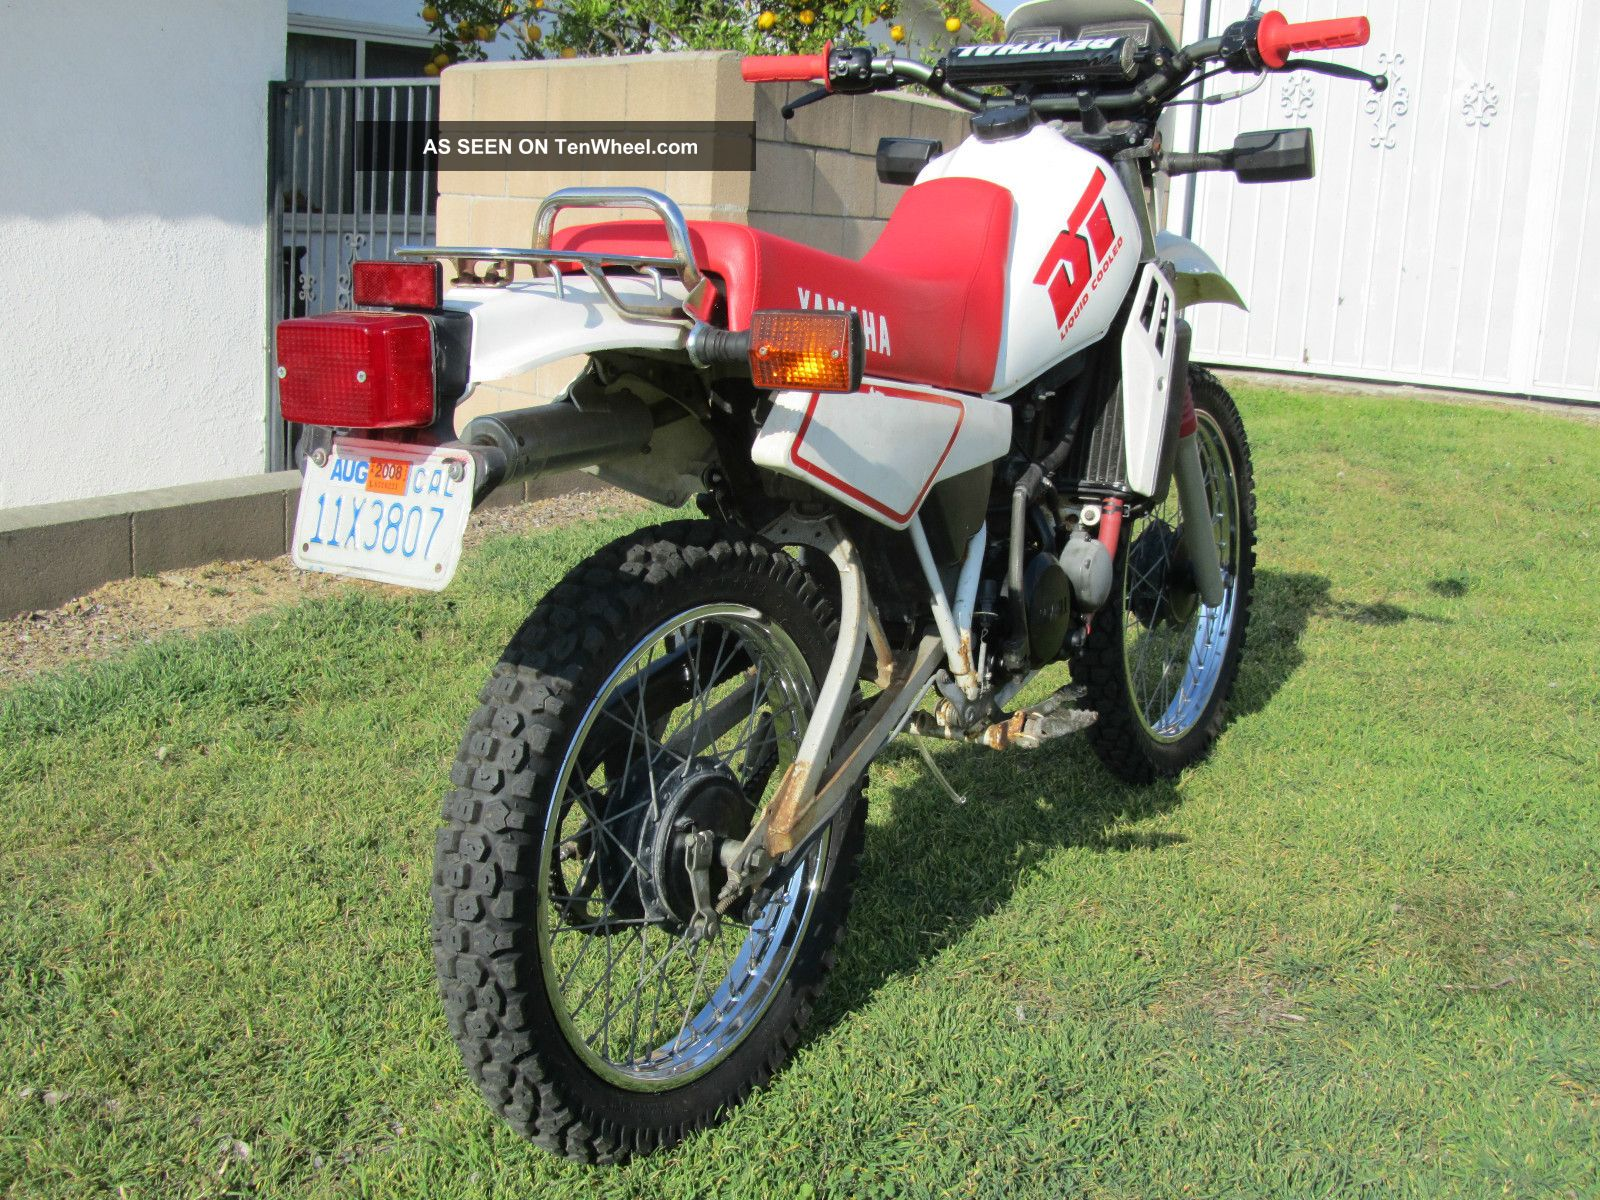 ... Yamaha Dt50 Dt 50 1988 Other photo 4